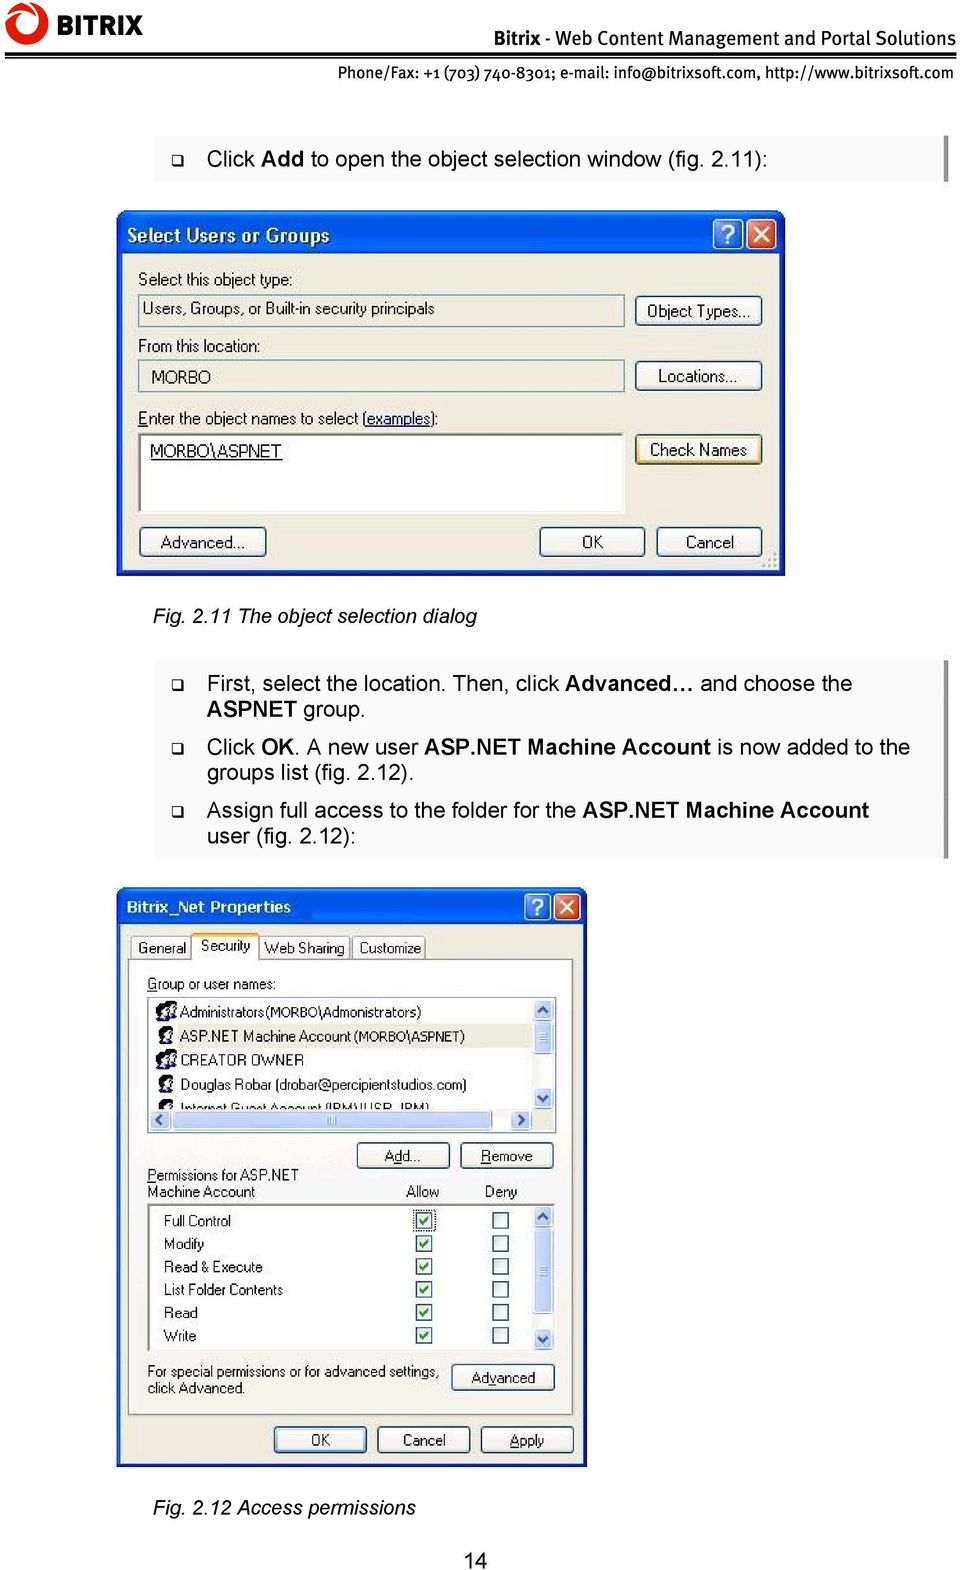 Then, click Advanced and choose the ASPNET group. Click OK. A new user ASP.